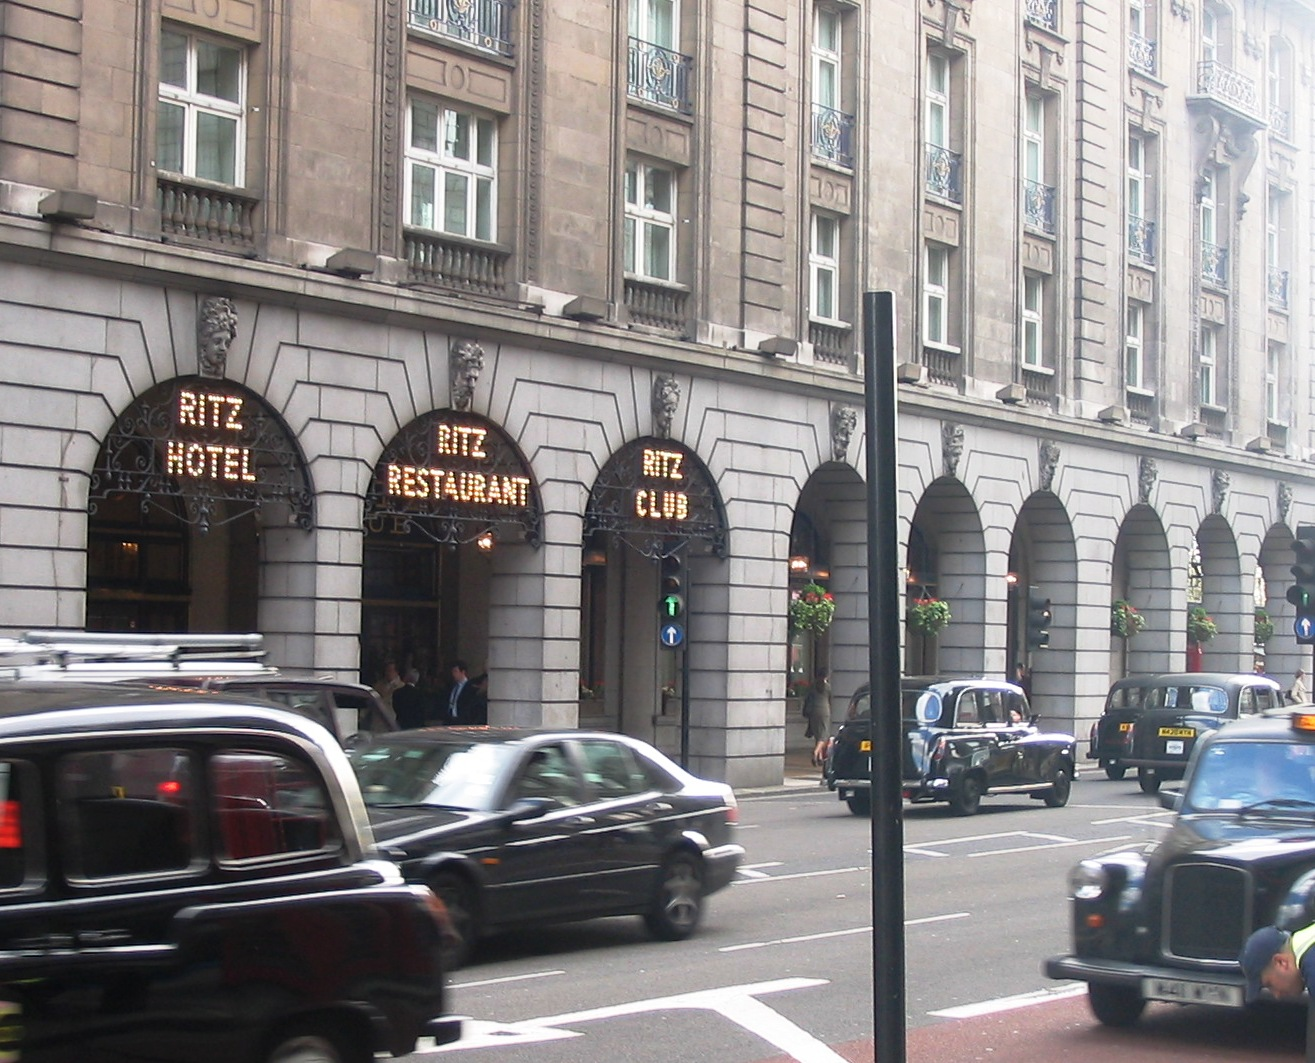 The Ritz Arcade on Piccadilly